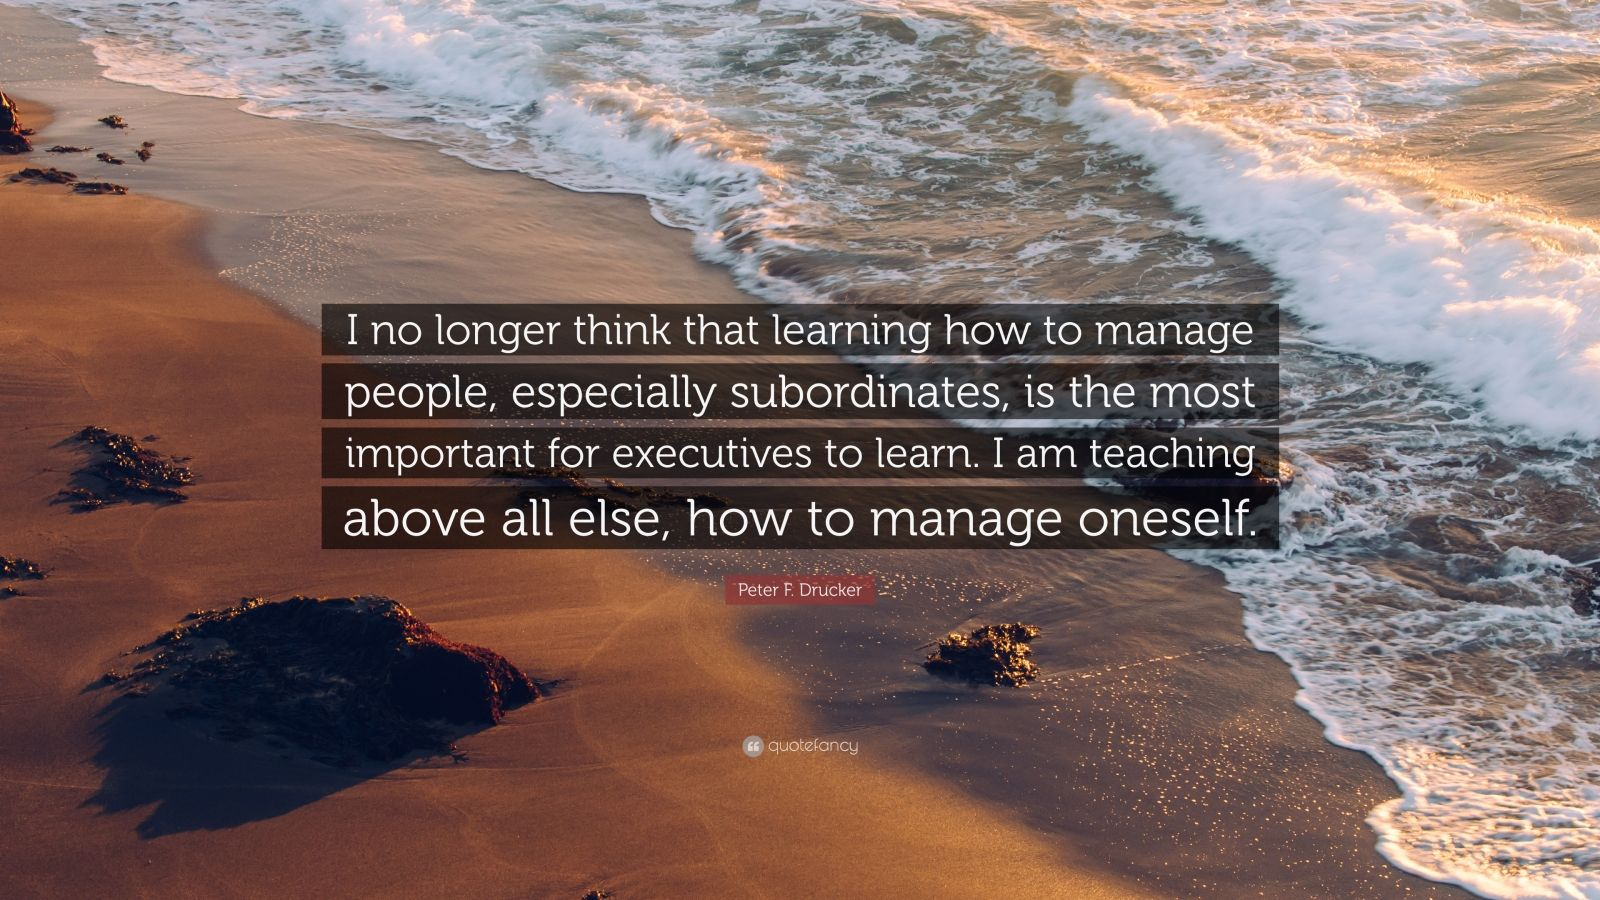 """Peter F. Drucker Quote: """"I no longer think that learning how to manage people, especially subordinates, is the most important for executives to learn. I am teaching above all else, how to manage oneself."""""""